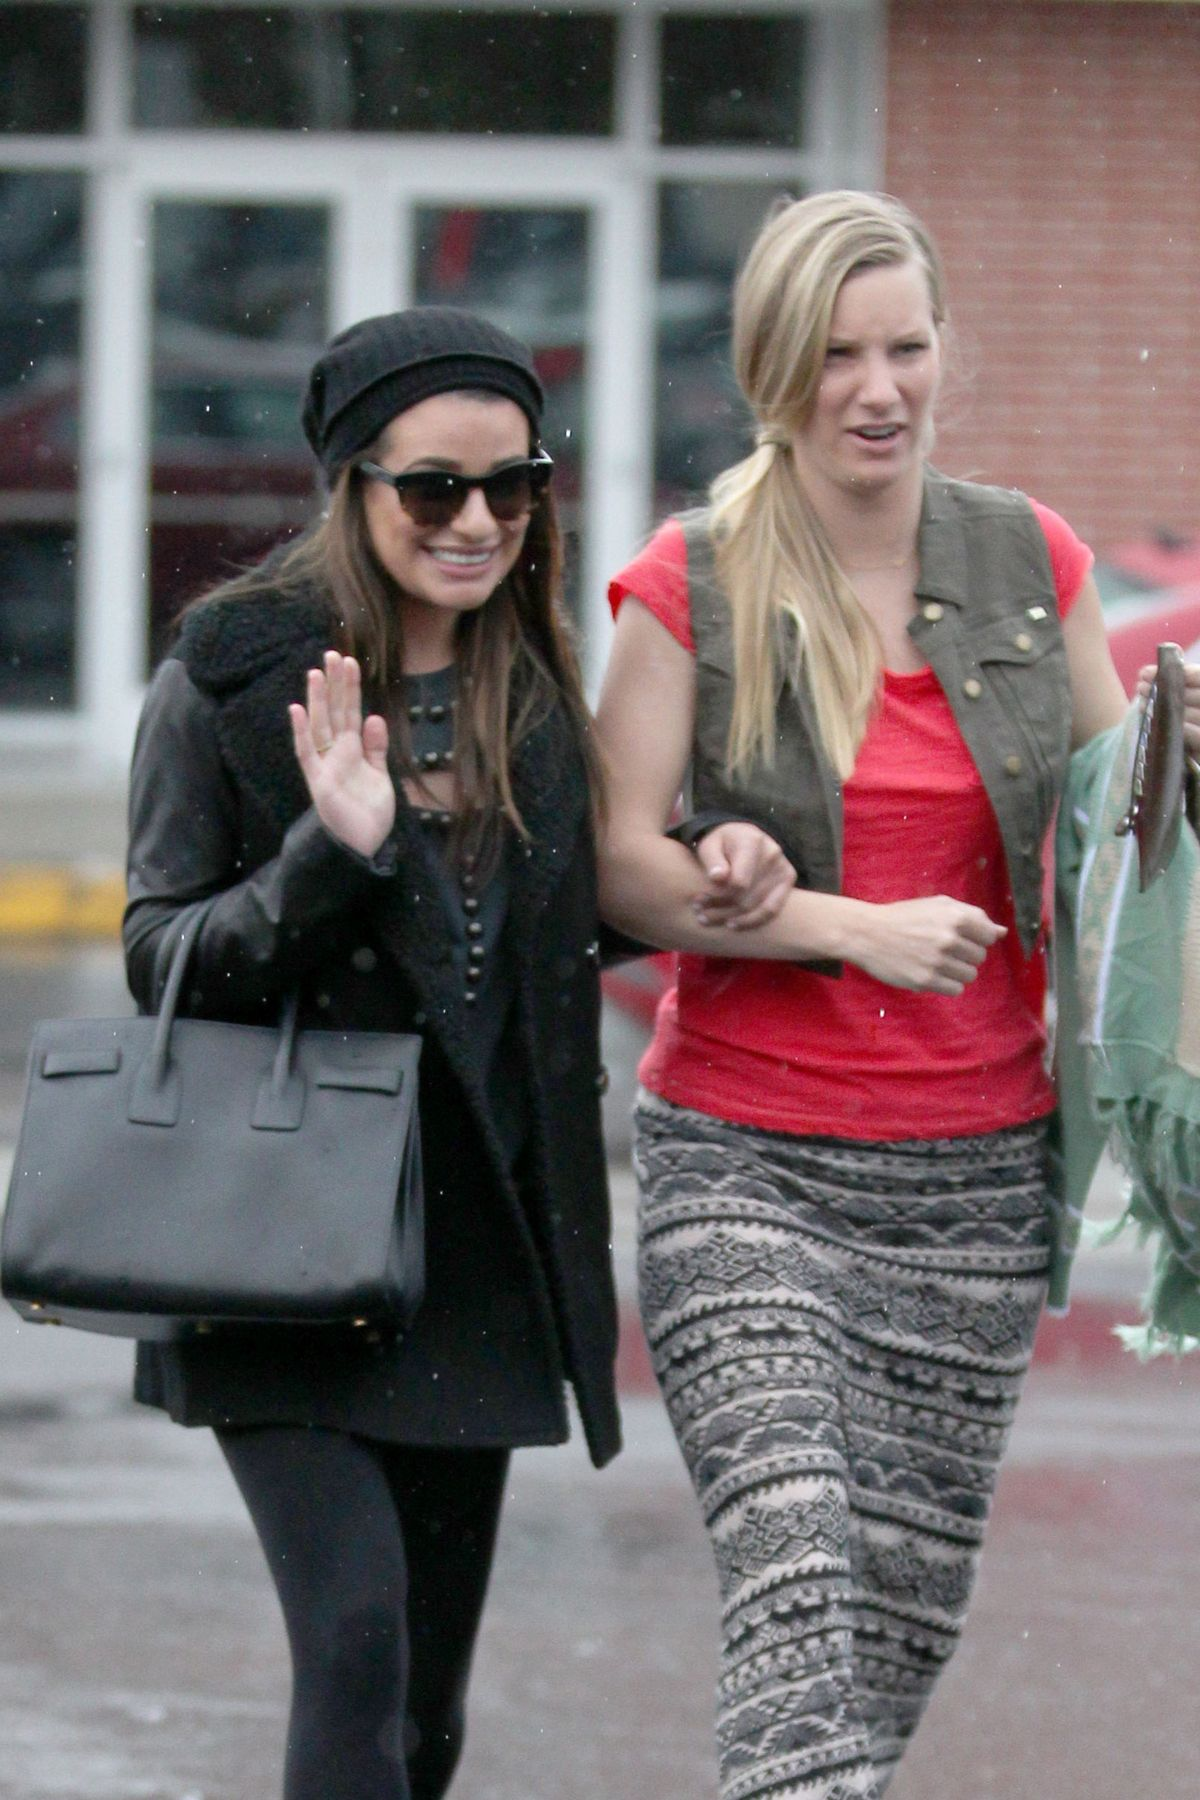 LEA MICHELE and HEATHER MORRIS Out Shopping in West Hollywood